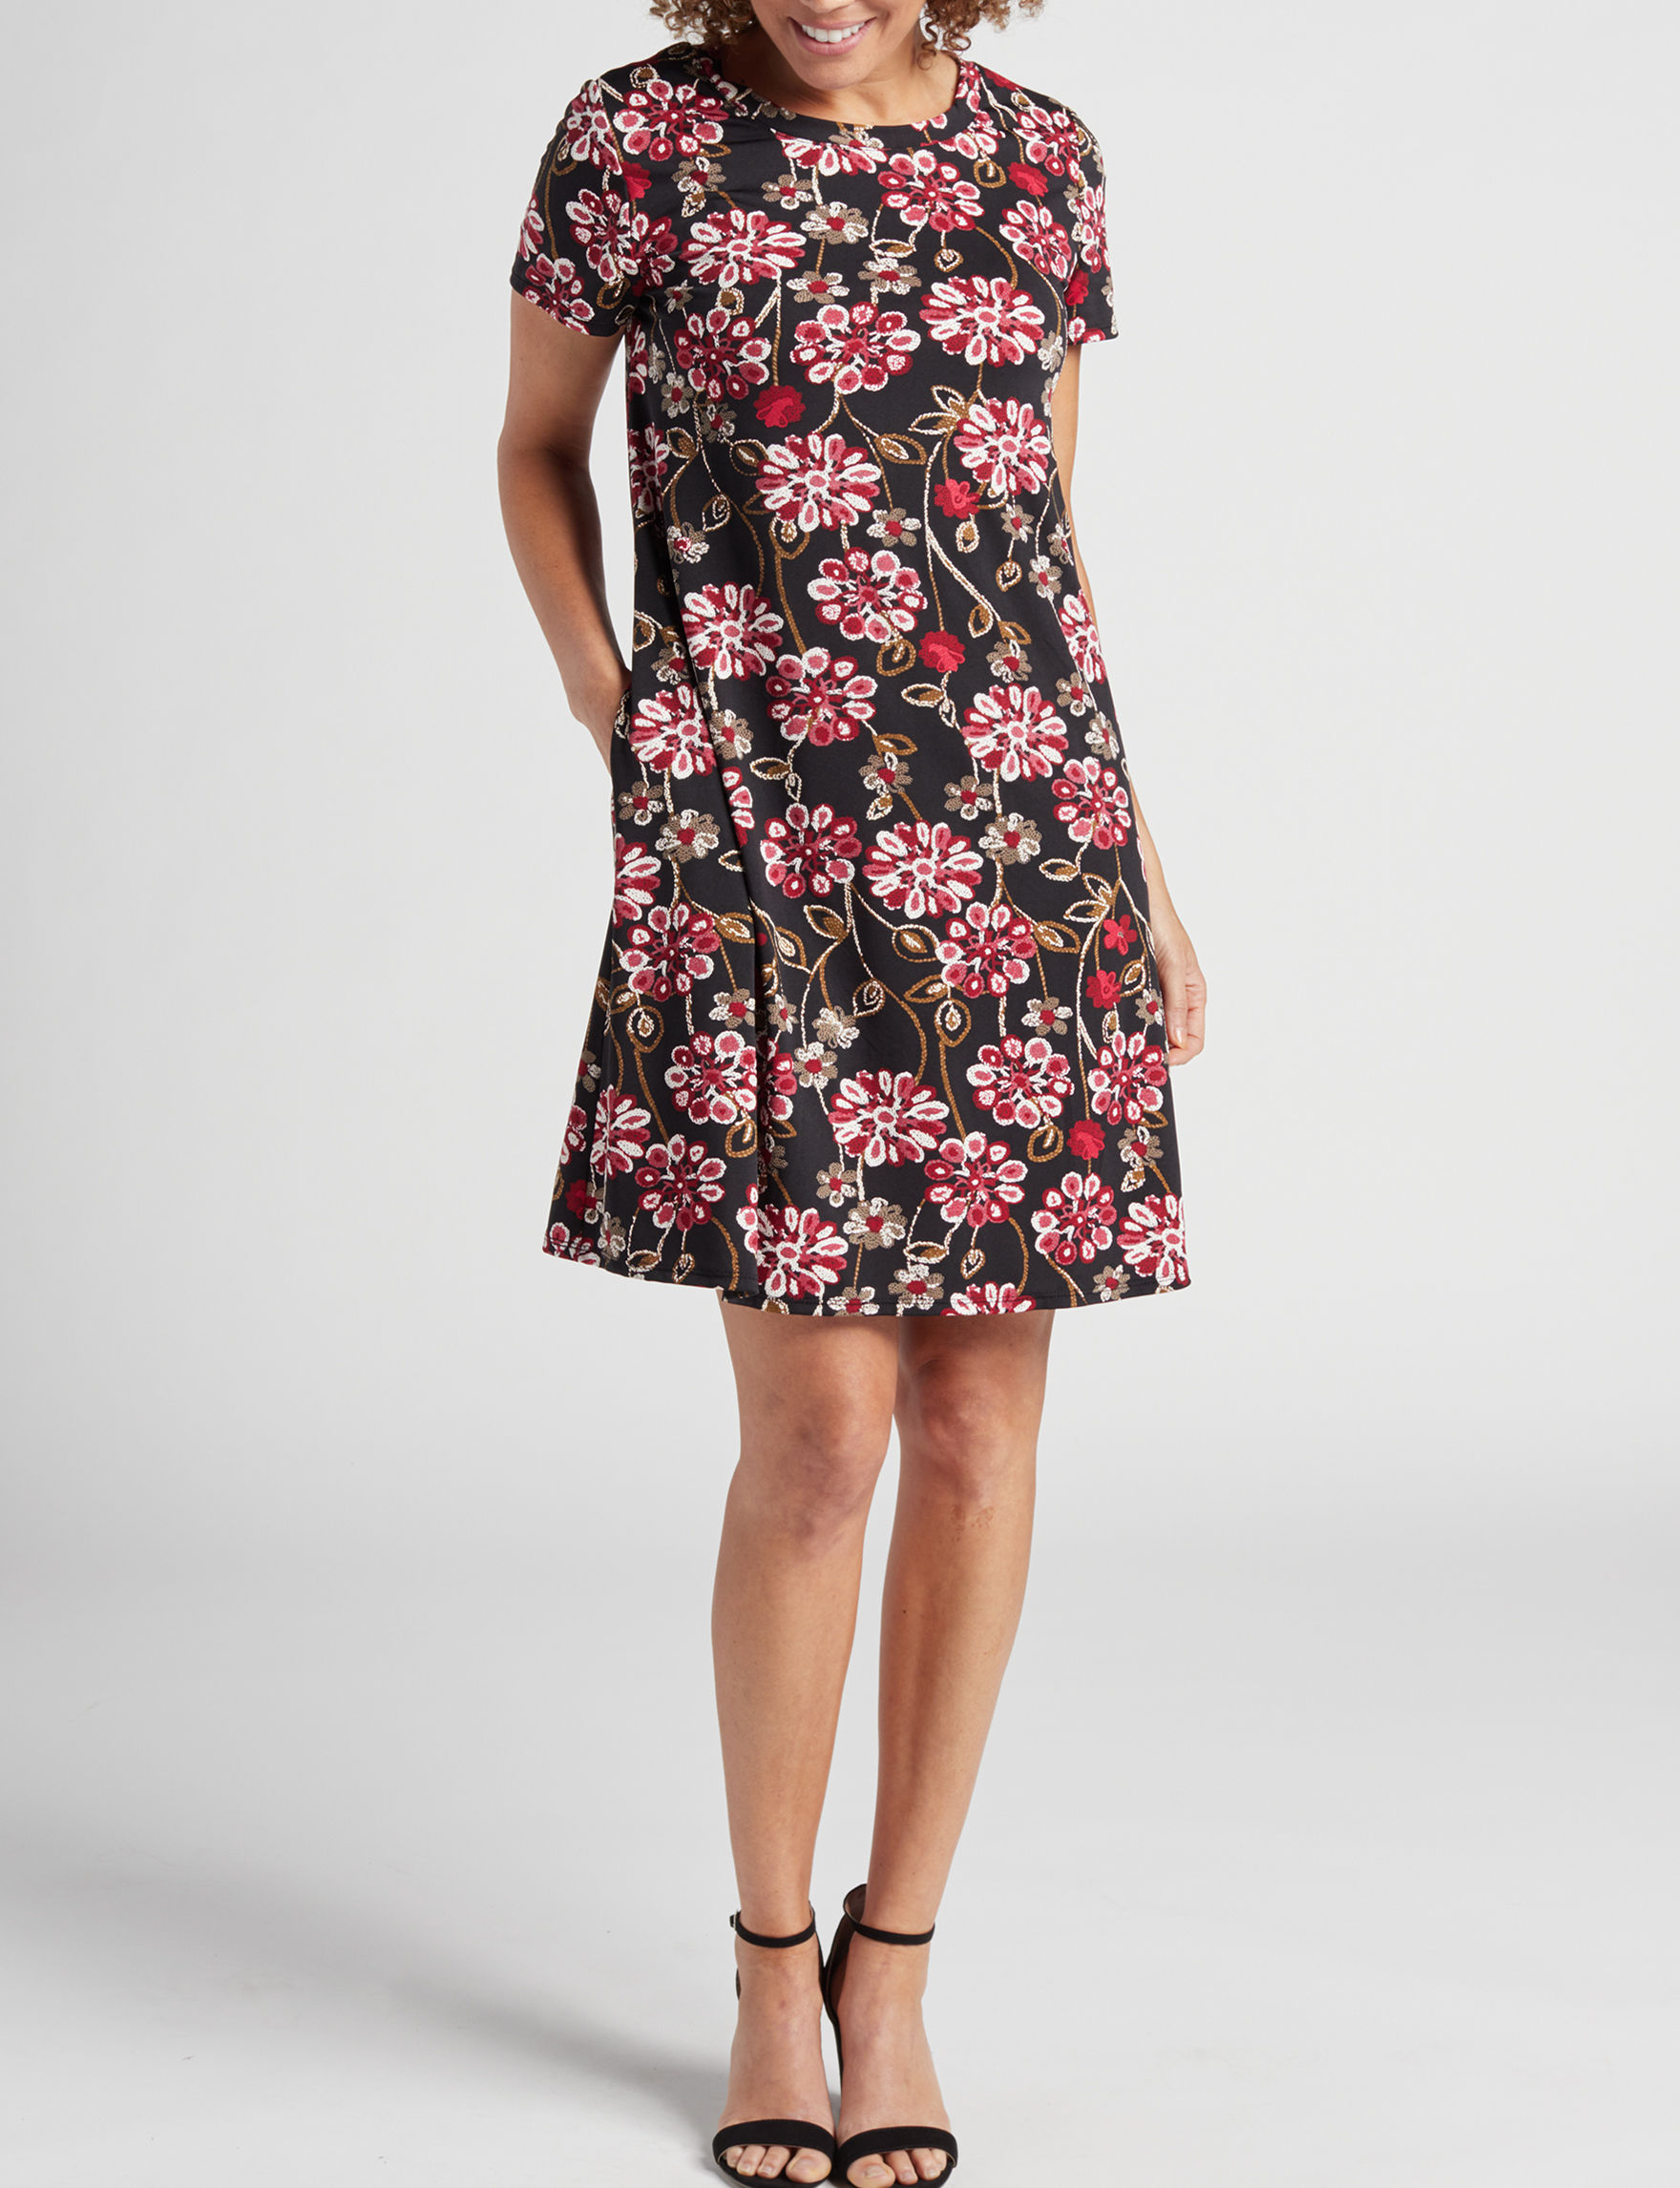 AGB Black Floral Everyday & Casual Shift Dresses